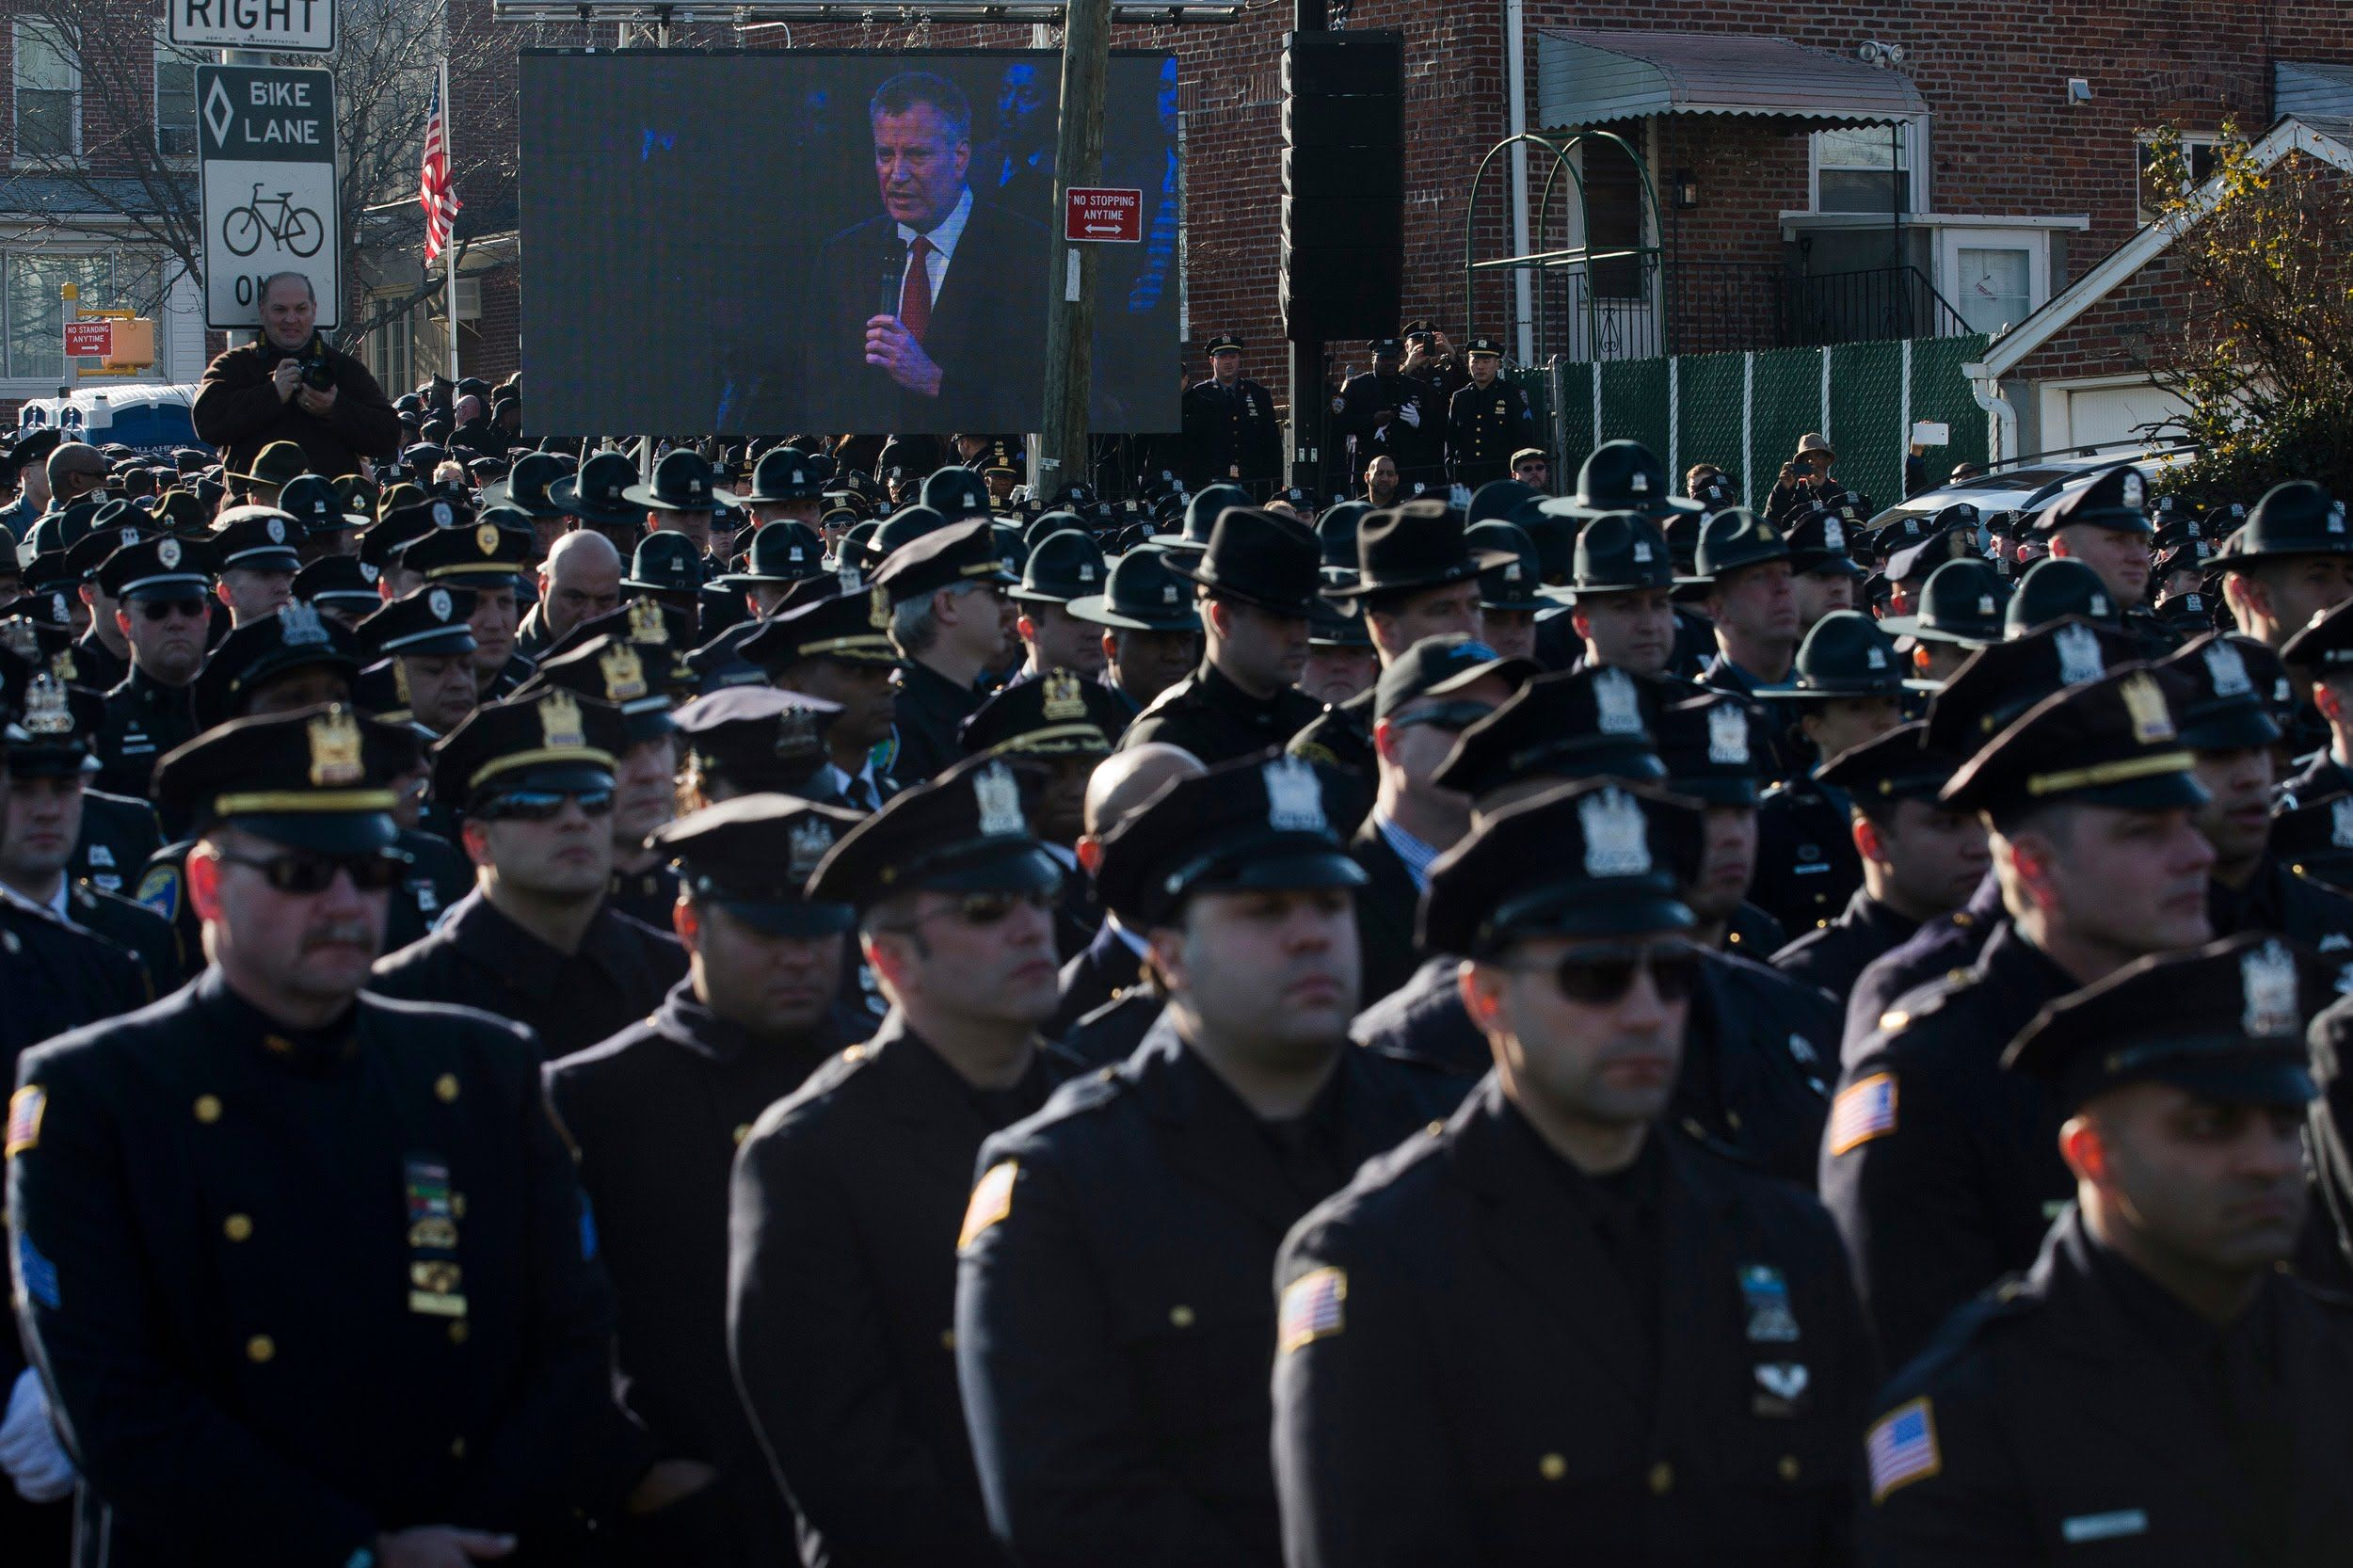 Shameful: NYPD Officers Turn Backs on NYC Mayor at Funeral